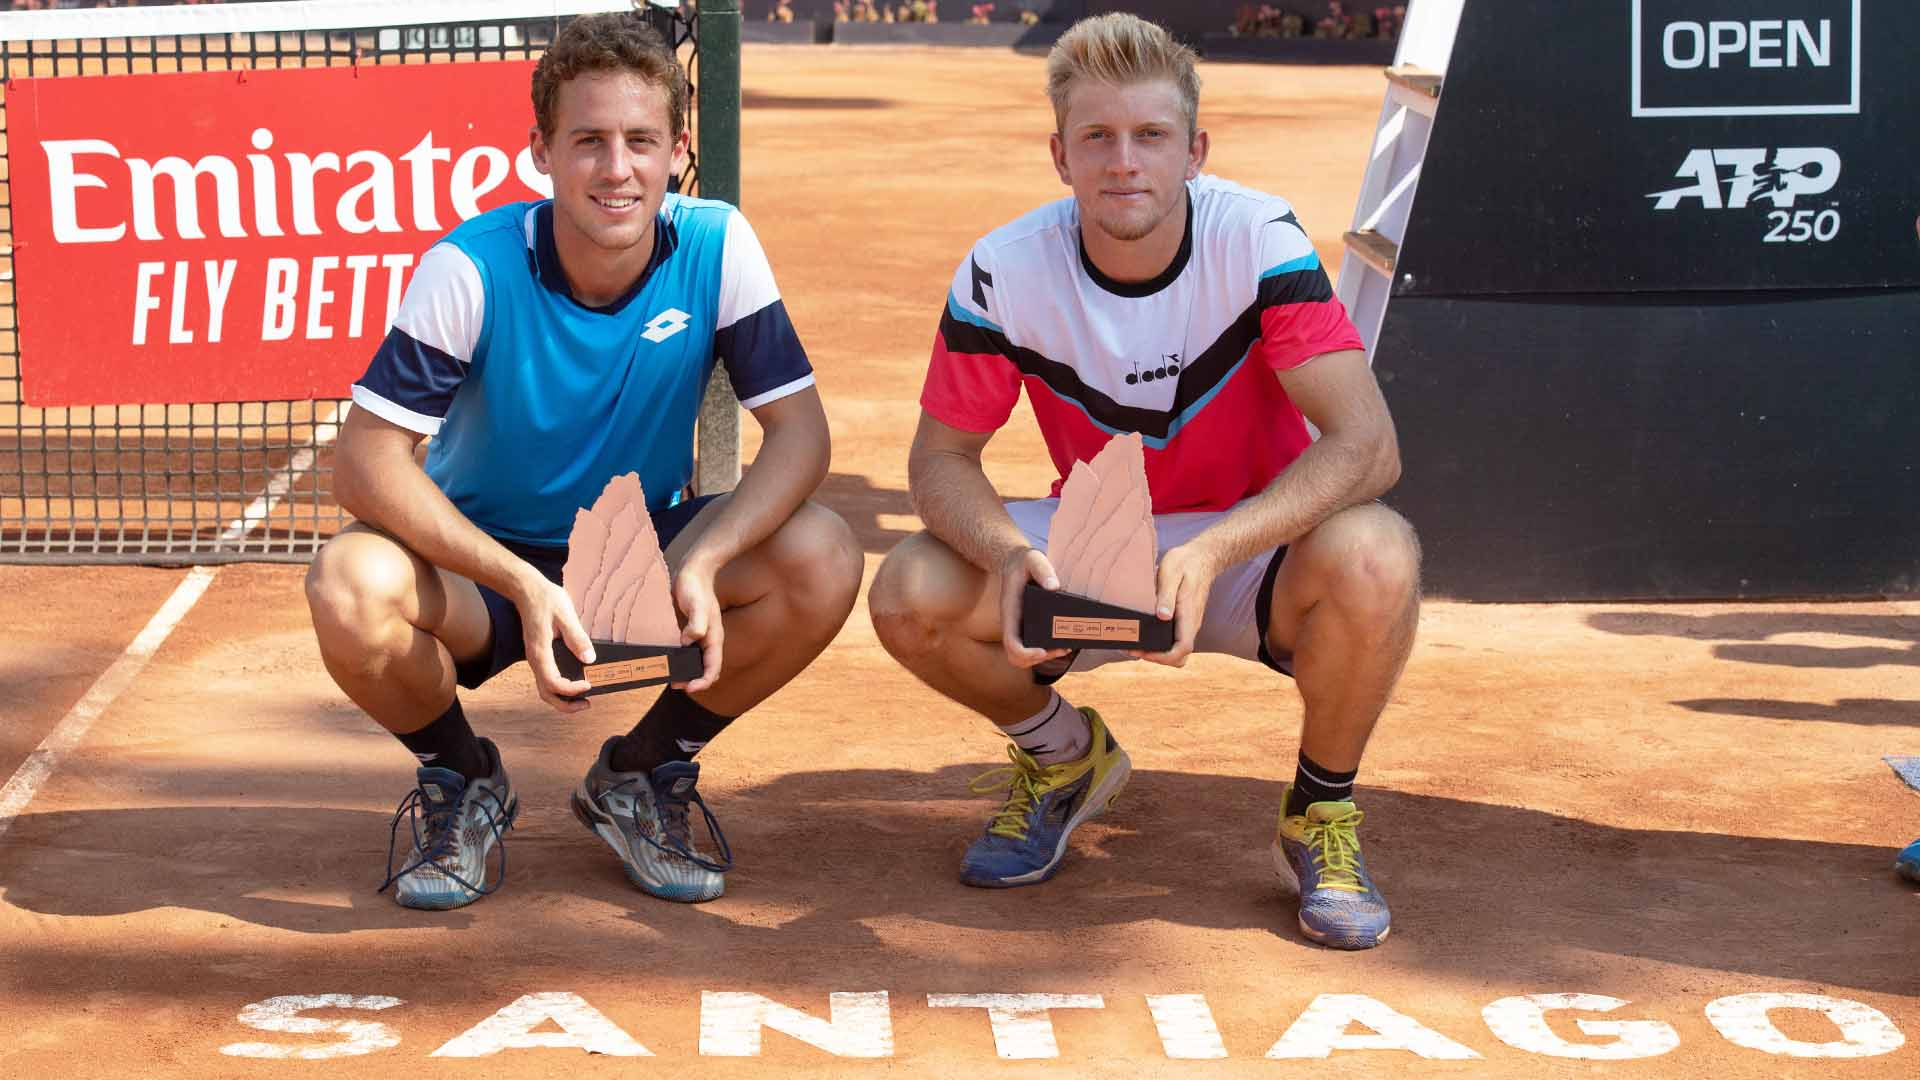 Roberto Carballes Baena and Alejandro Davidovich Fokina were making their team debut this week at the Chile Dove Men+Care Open in Santiago.